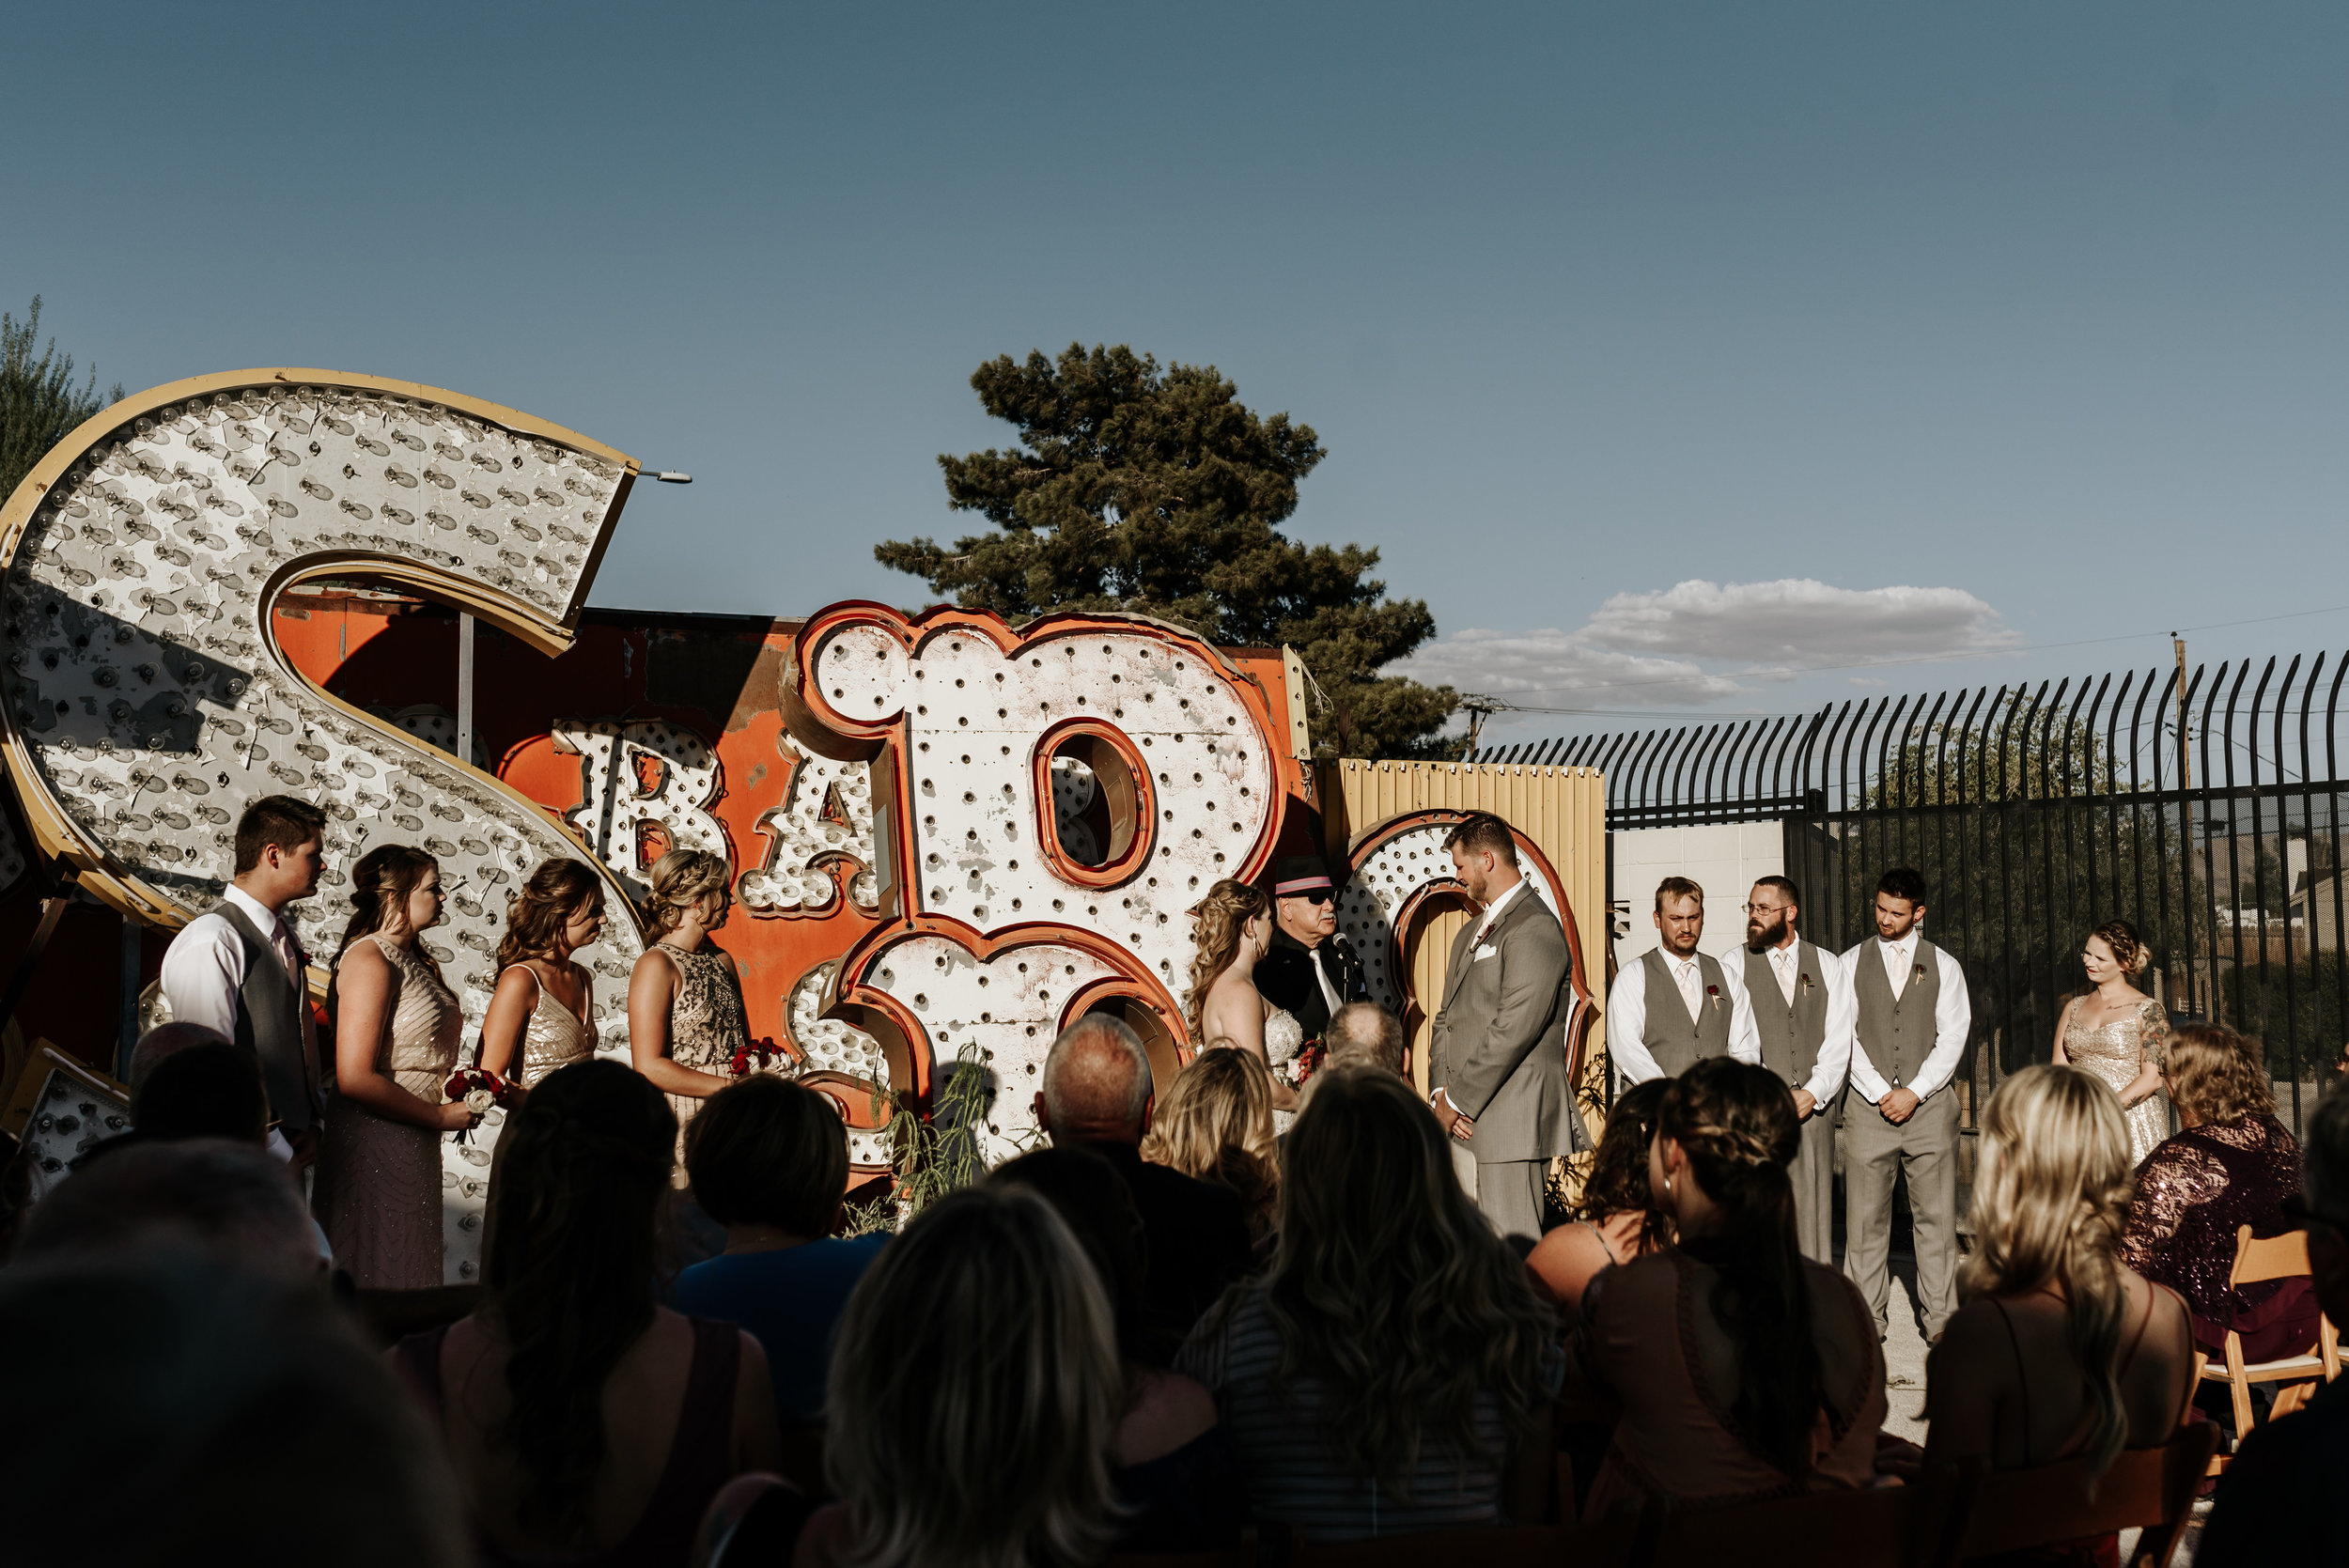 Neon-Museum-Wedding-Las-Vegas-Nevada-Golden-Nugget-Photography-by-V-Ally-and-Dan-2897.jpg